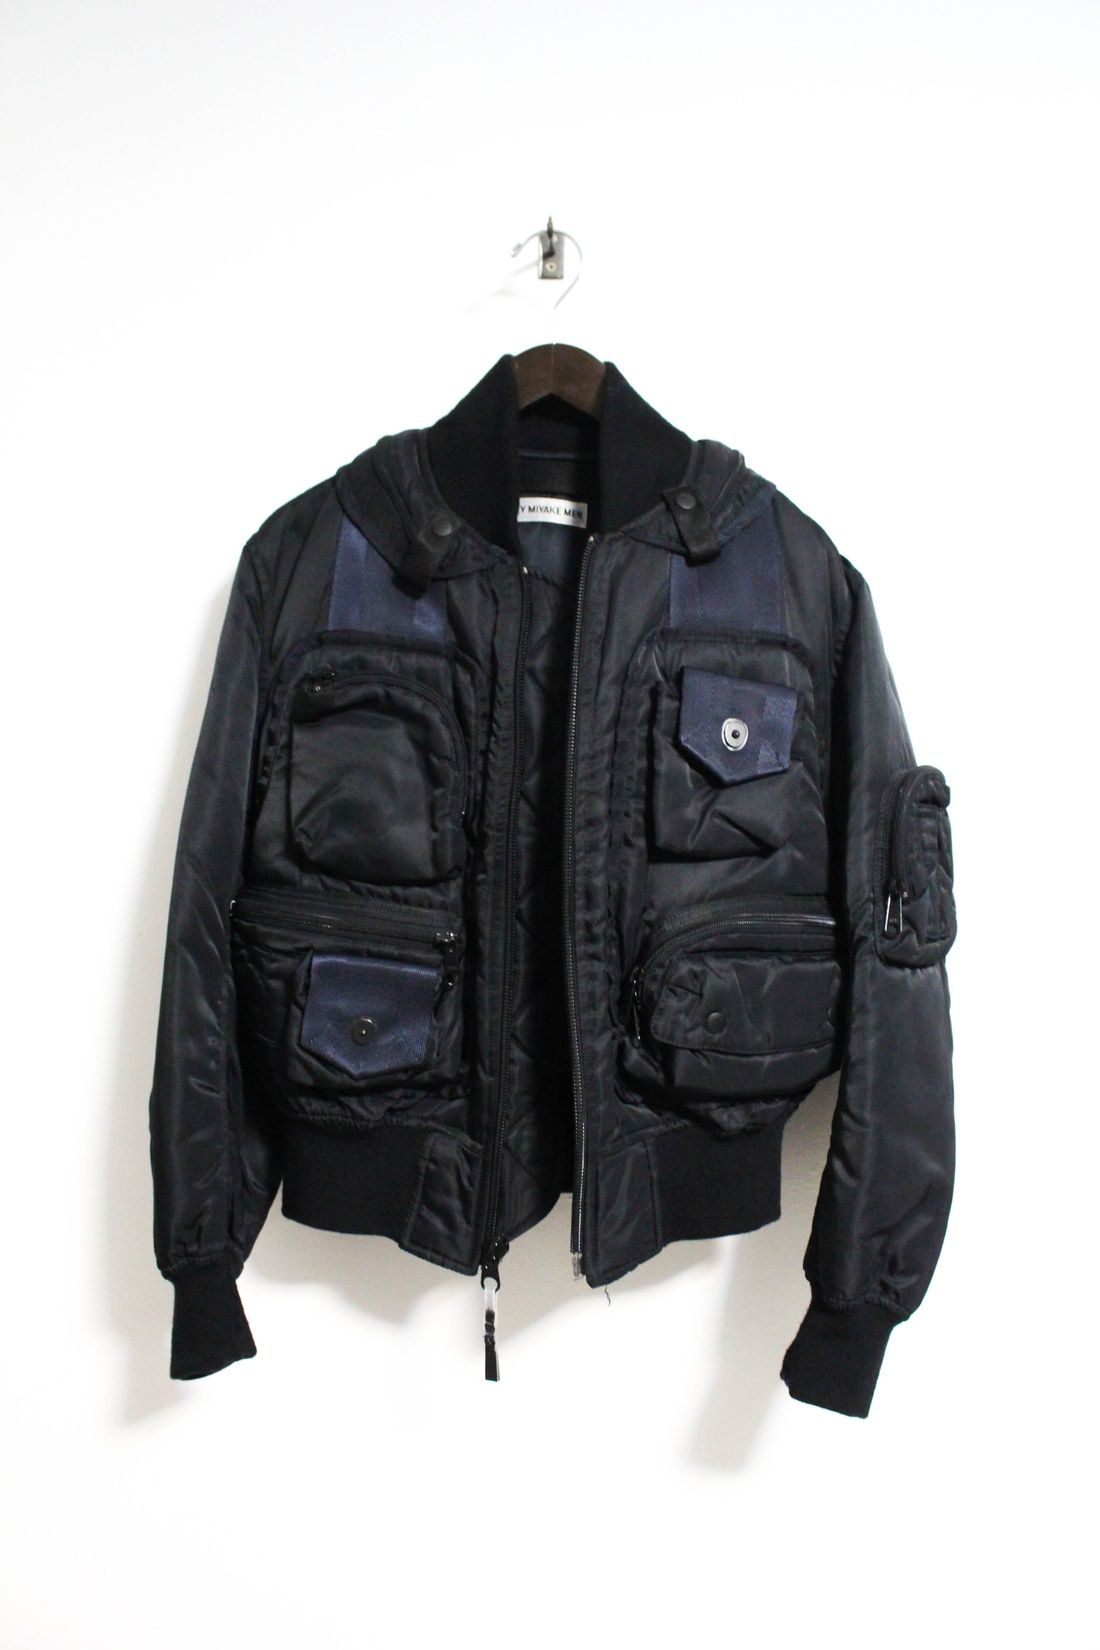 23f8d463bb84 Issey Miyake Aw 1996 Parachute Cargo Ma 1 Bomber Jacket Size M  4000 -  Grailed